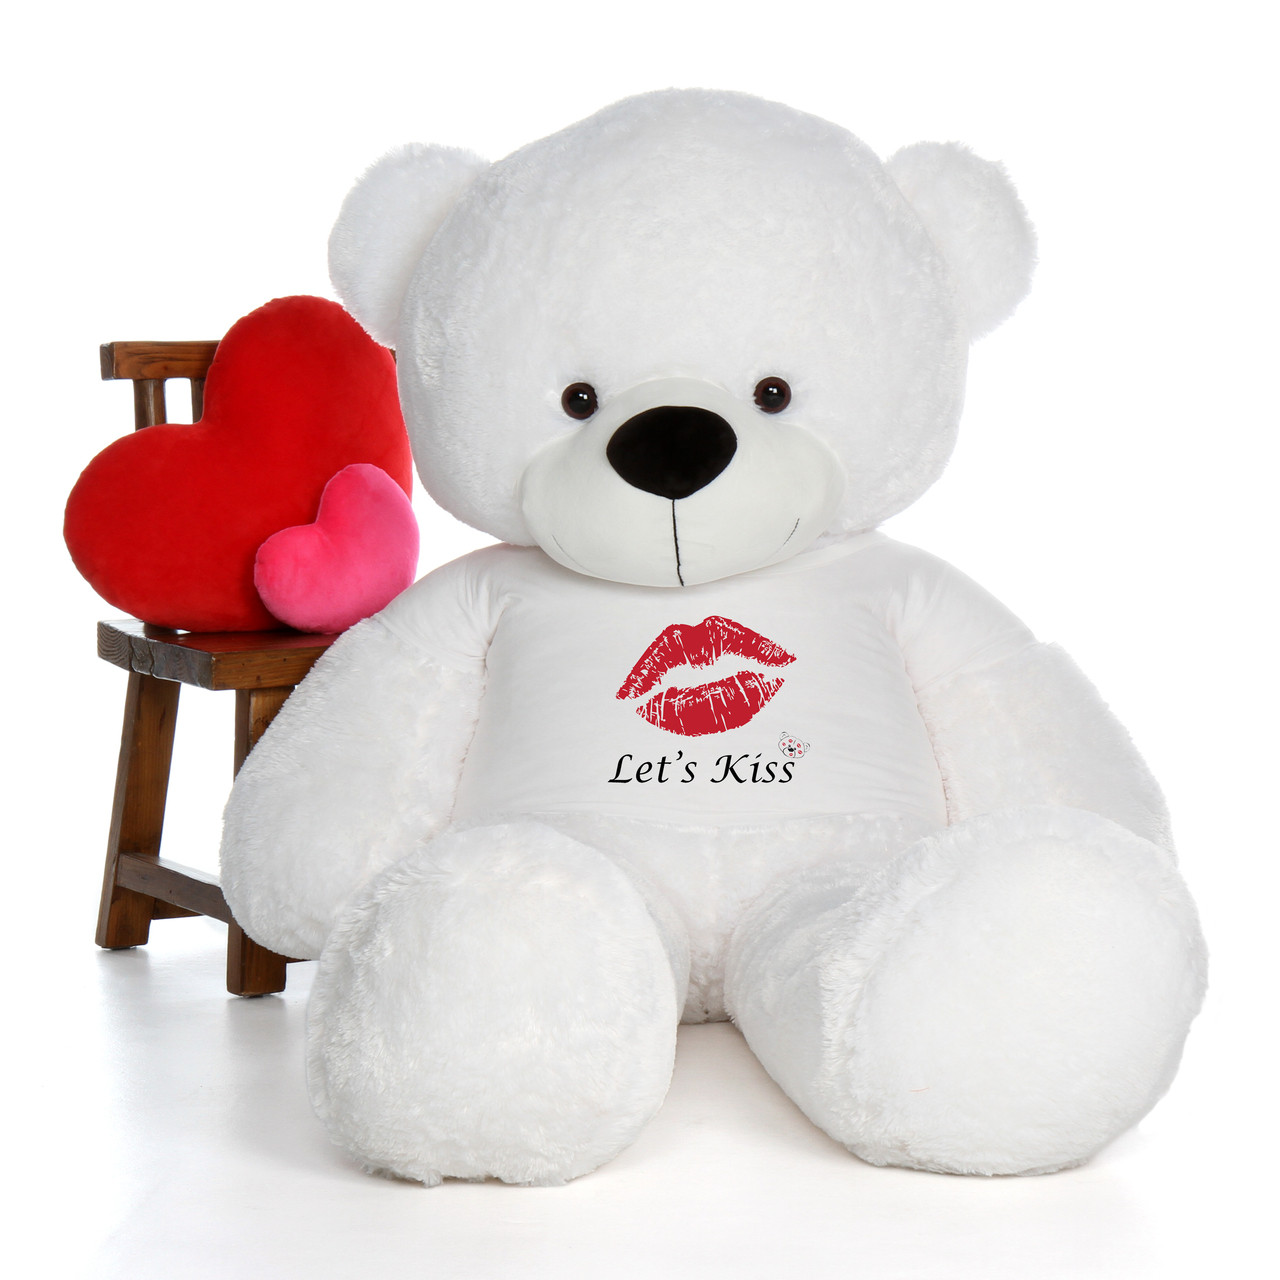 6 Foot Life Size Valentine S Day Teddy Bear In Let S Kiss Shirt